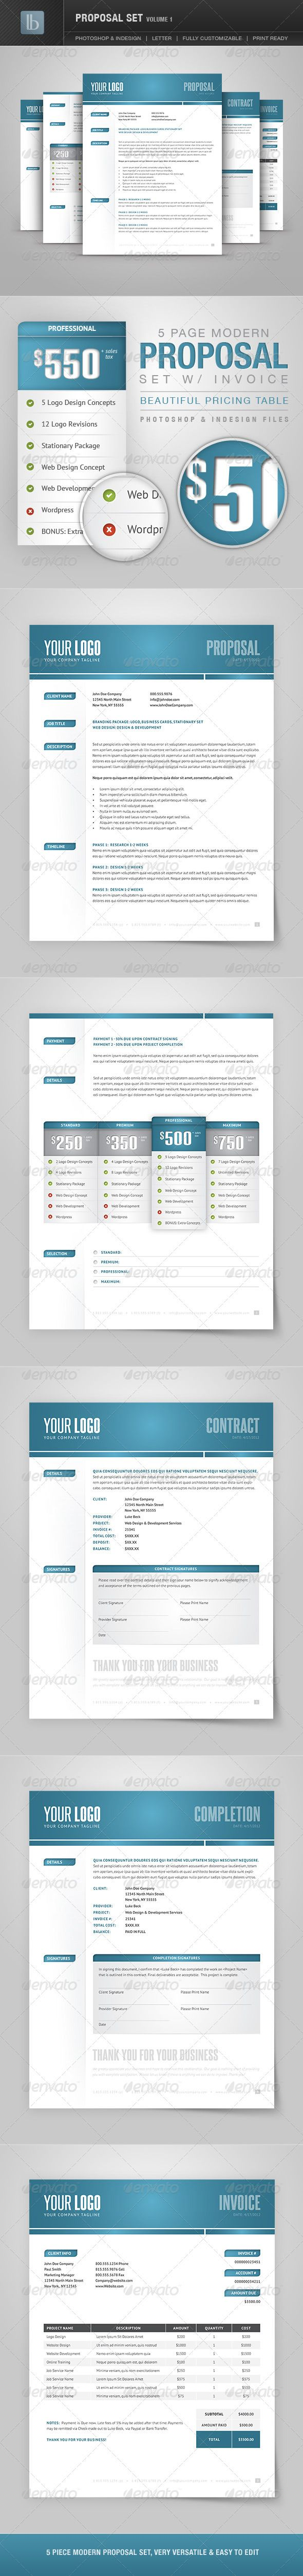 Proposal Set Template PSD, InDesign INDD. Download here: http ...